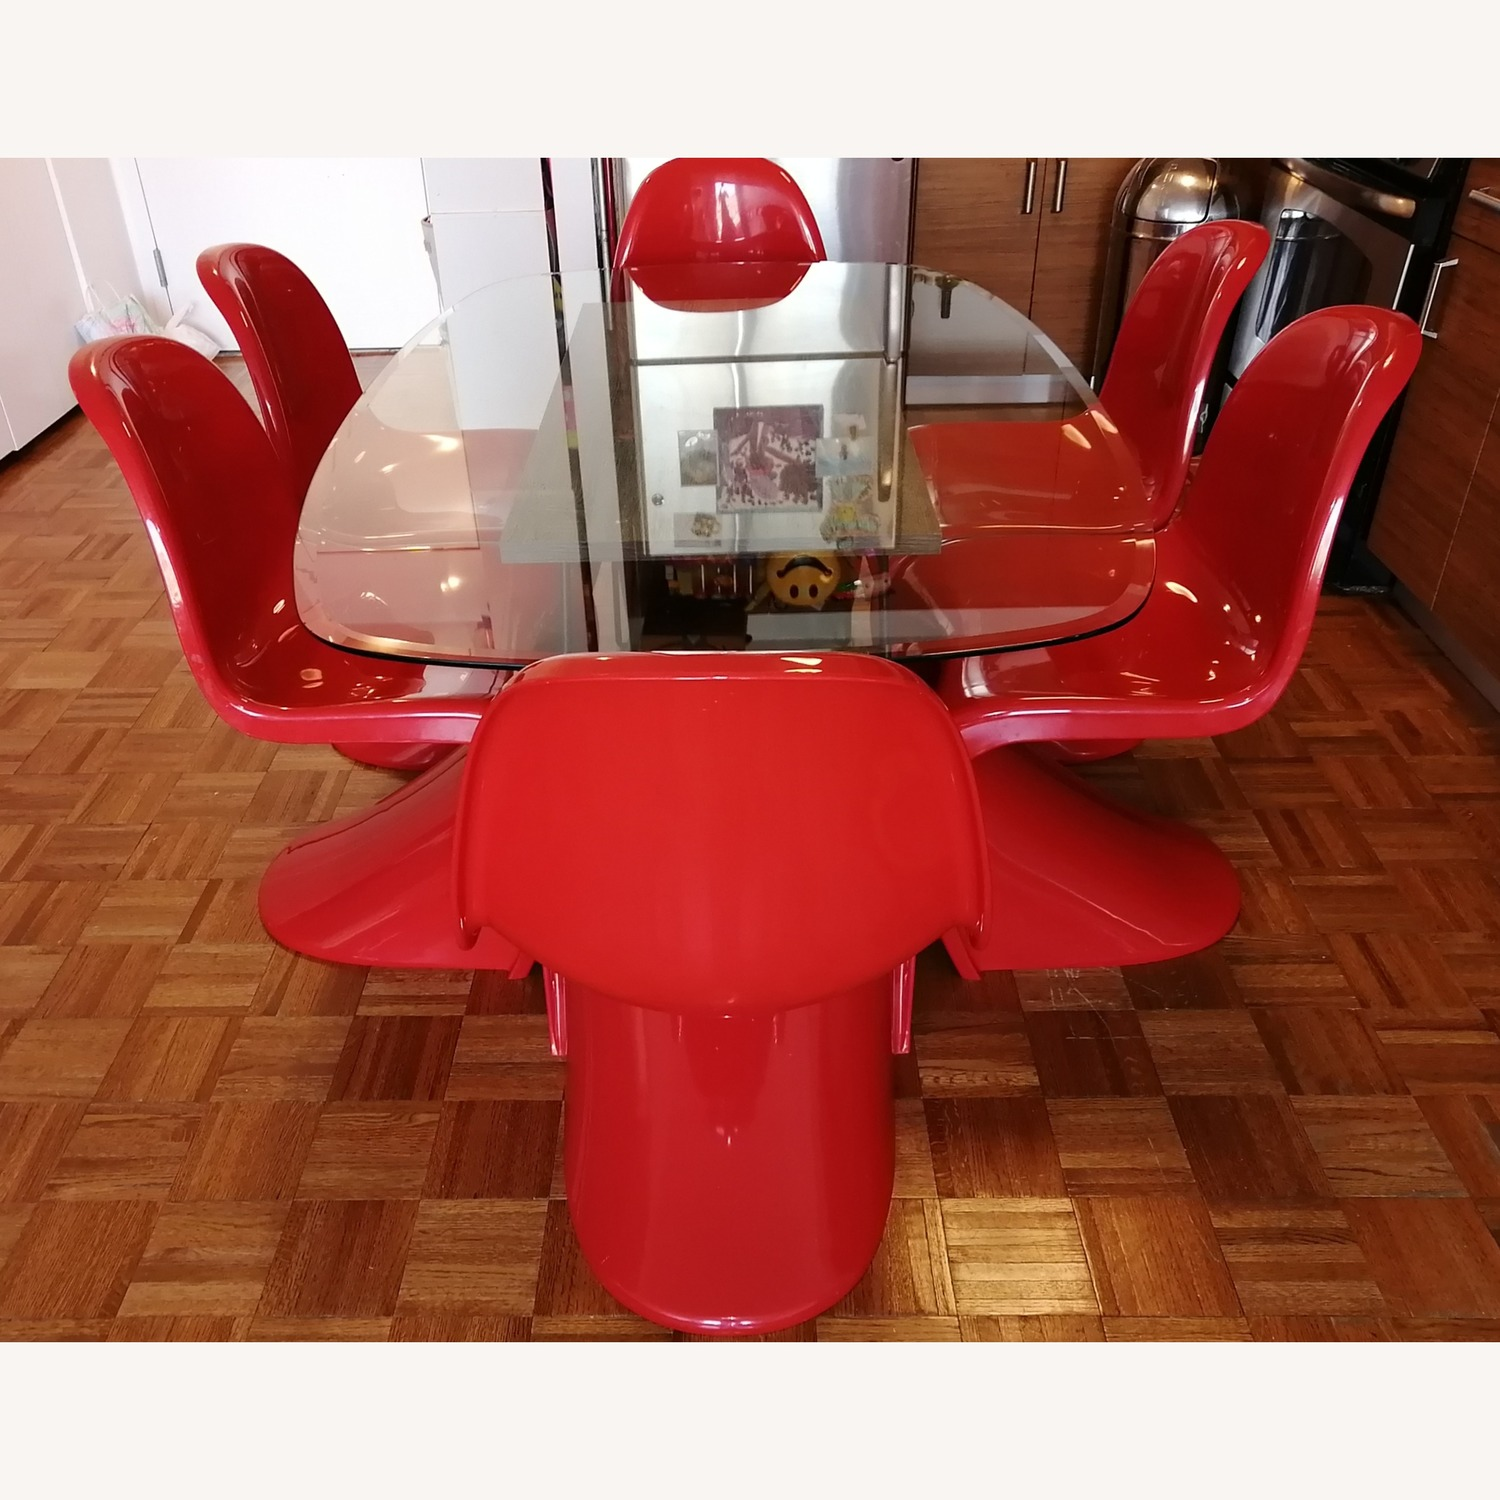 6 Red Acrylic Panton Chairs - image-2